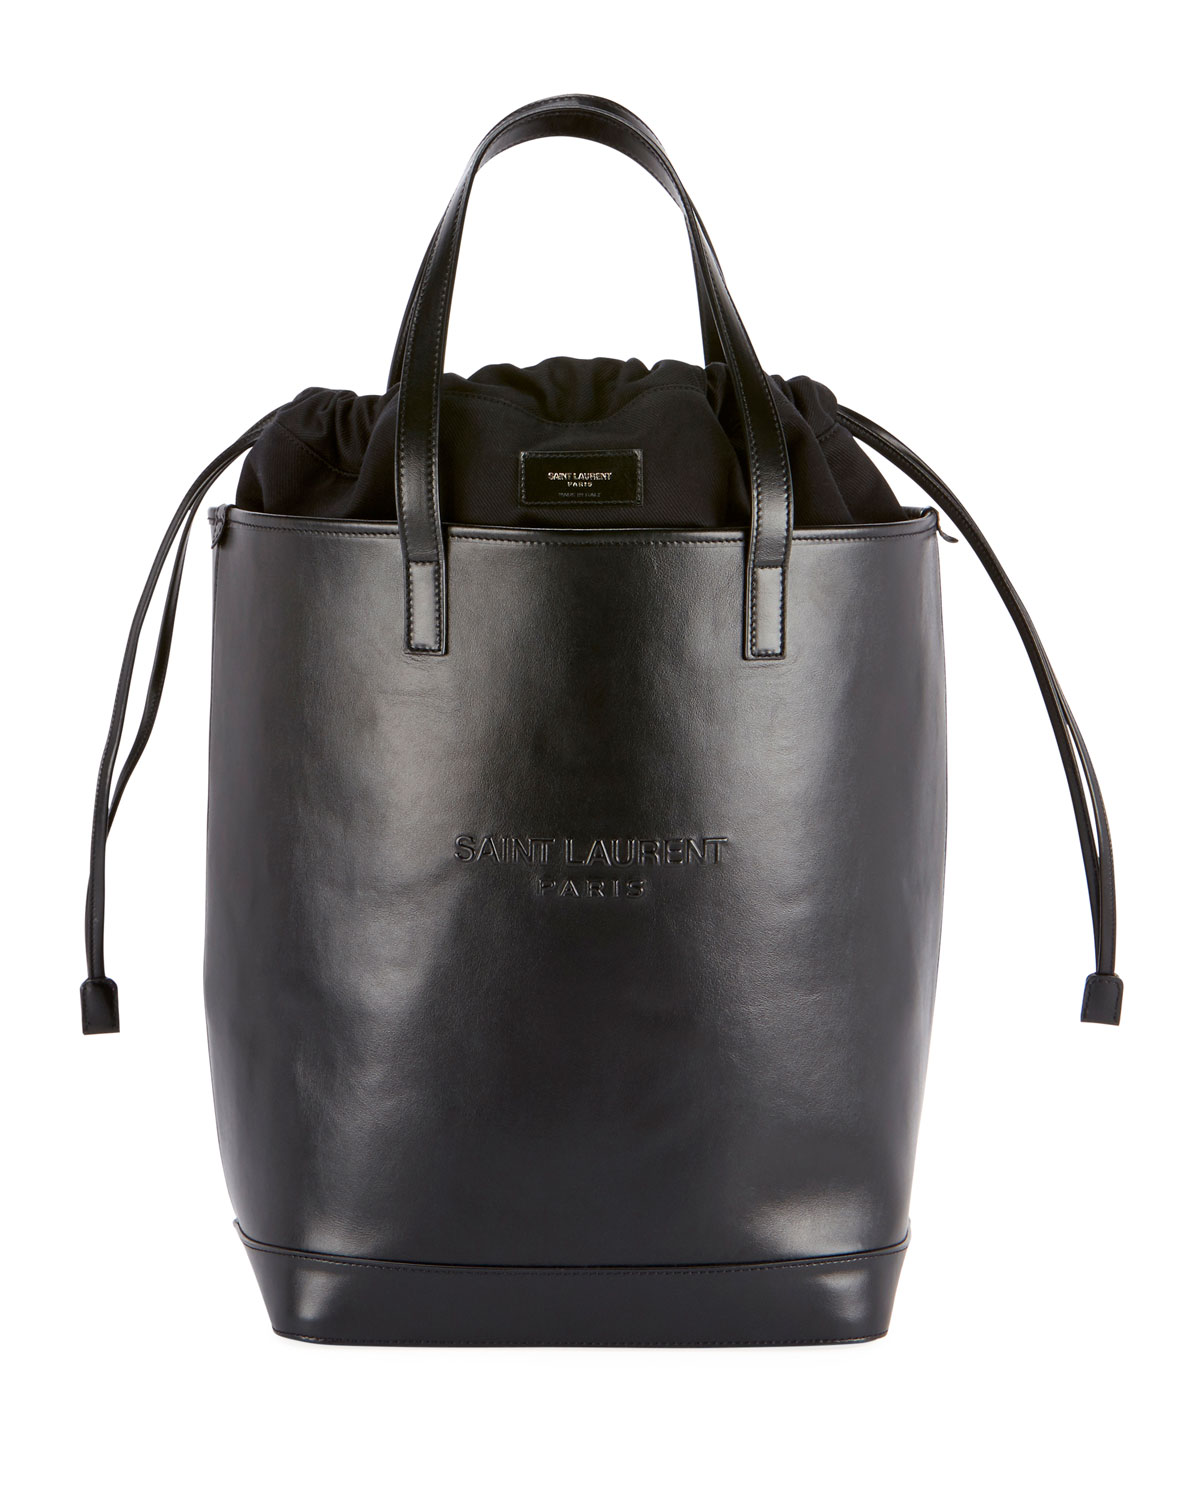 9233a492088f1 Saint Laurent Teddy Harlem Large Leather Bucket Bag with Embossed ...